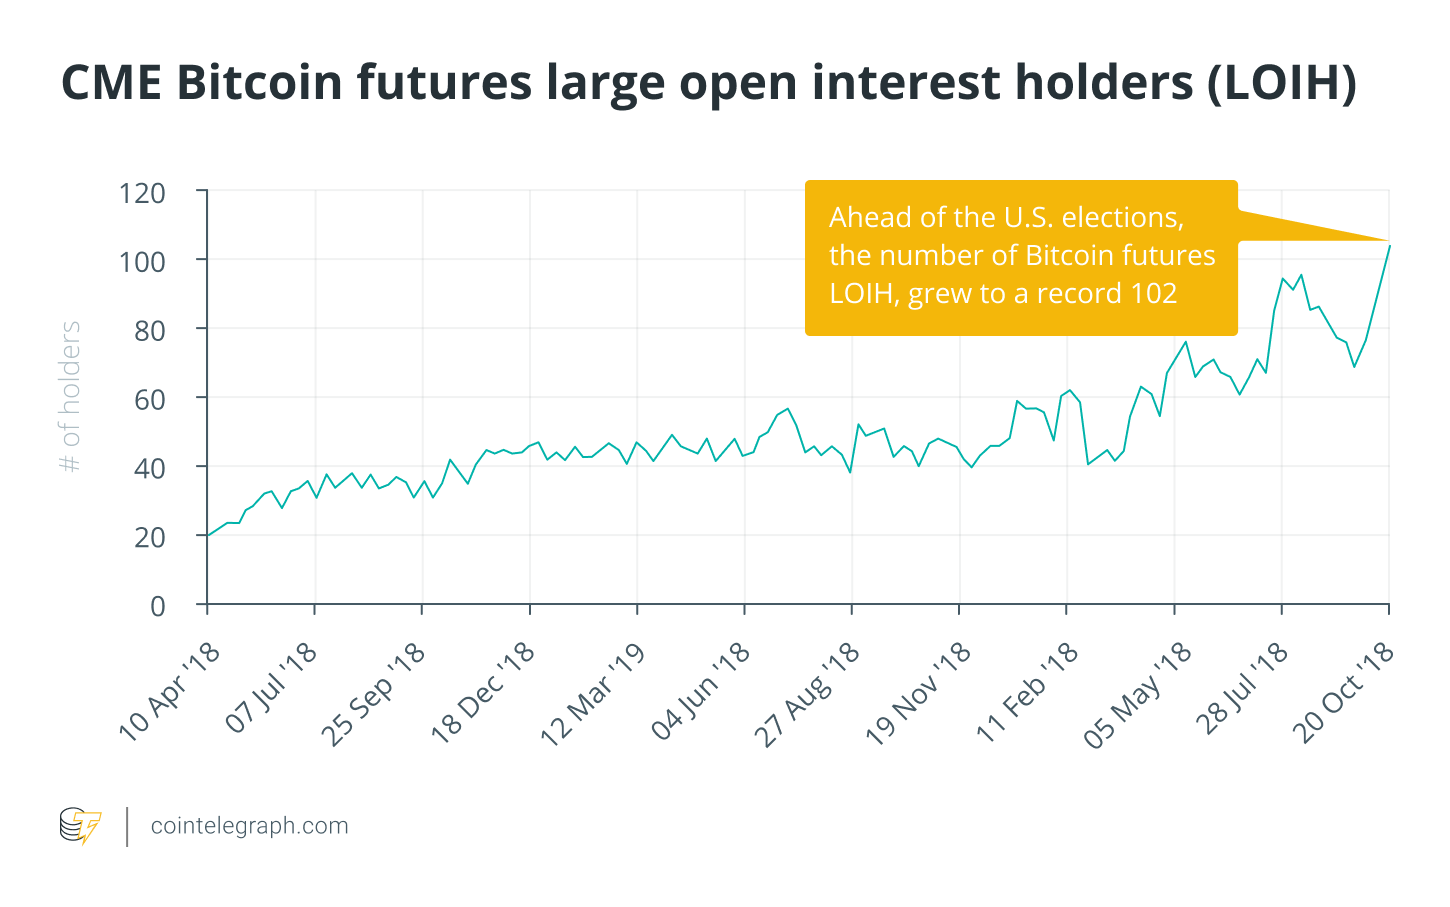 With bitcoin prices rising, institutions are relying on digital assets